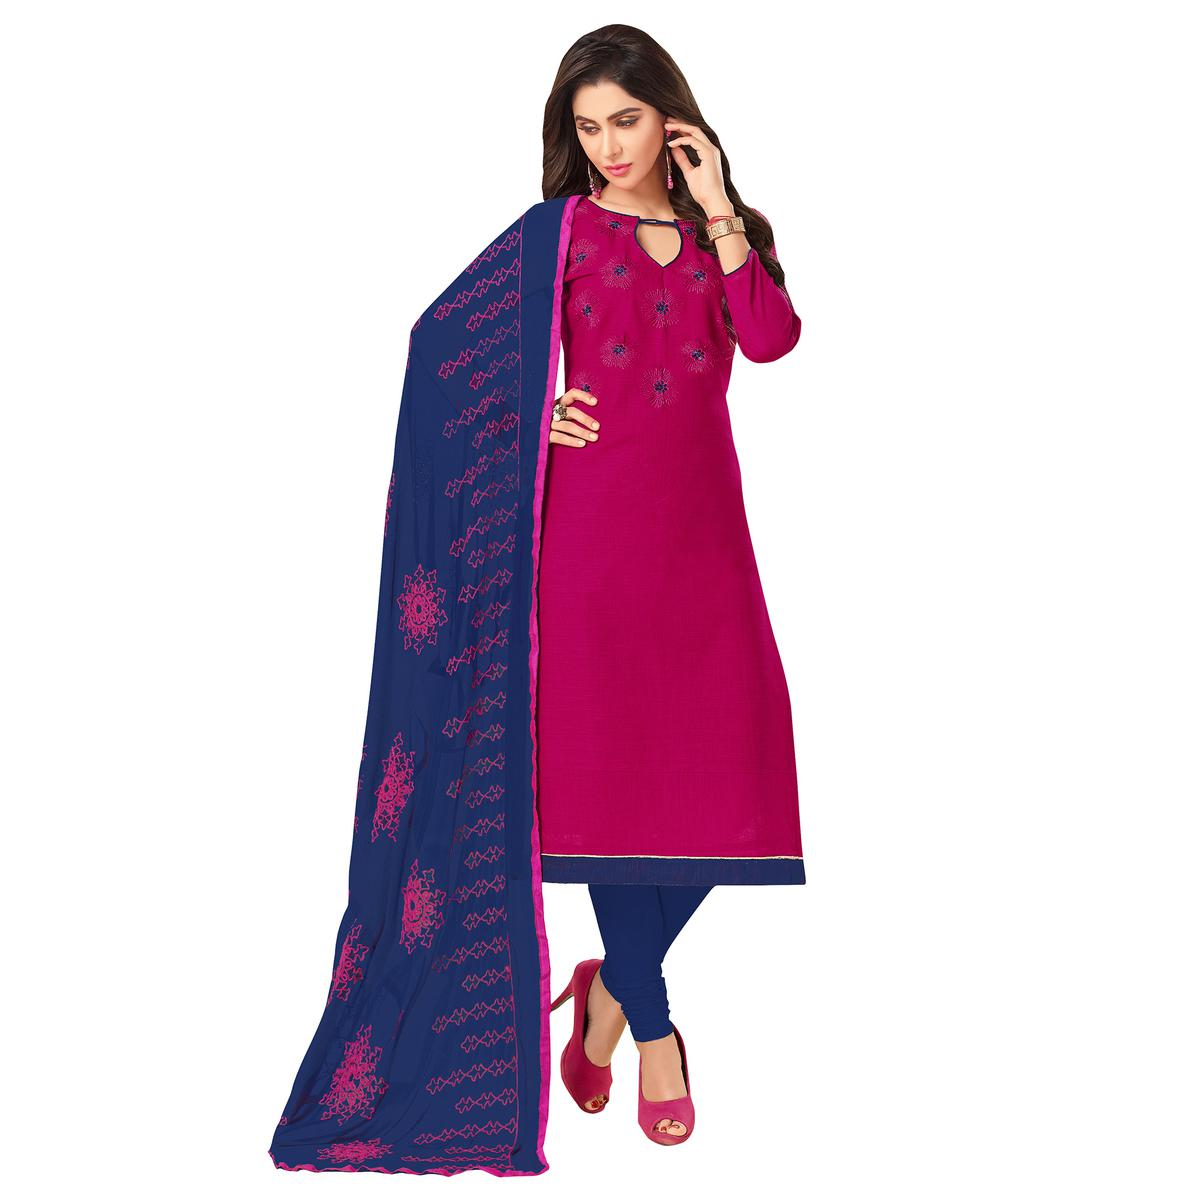 Charming Pink Colored Embroidered Khadi Silk Dress Material